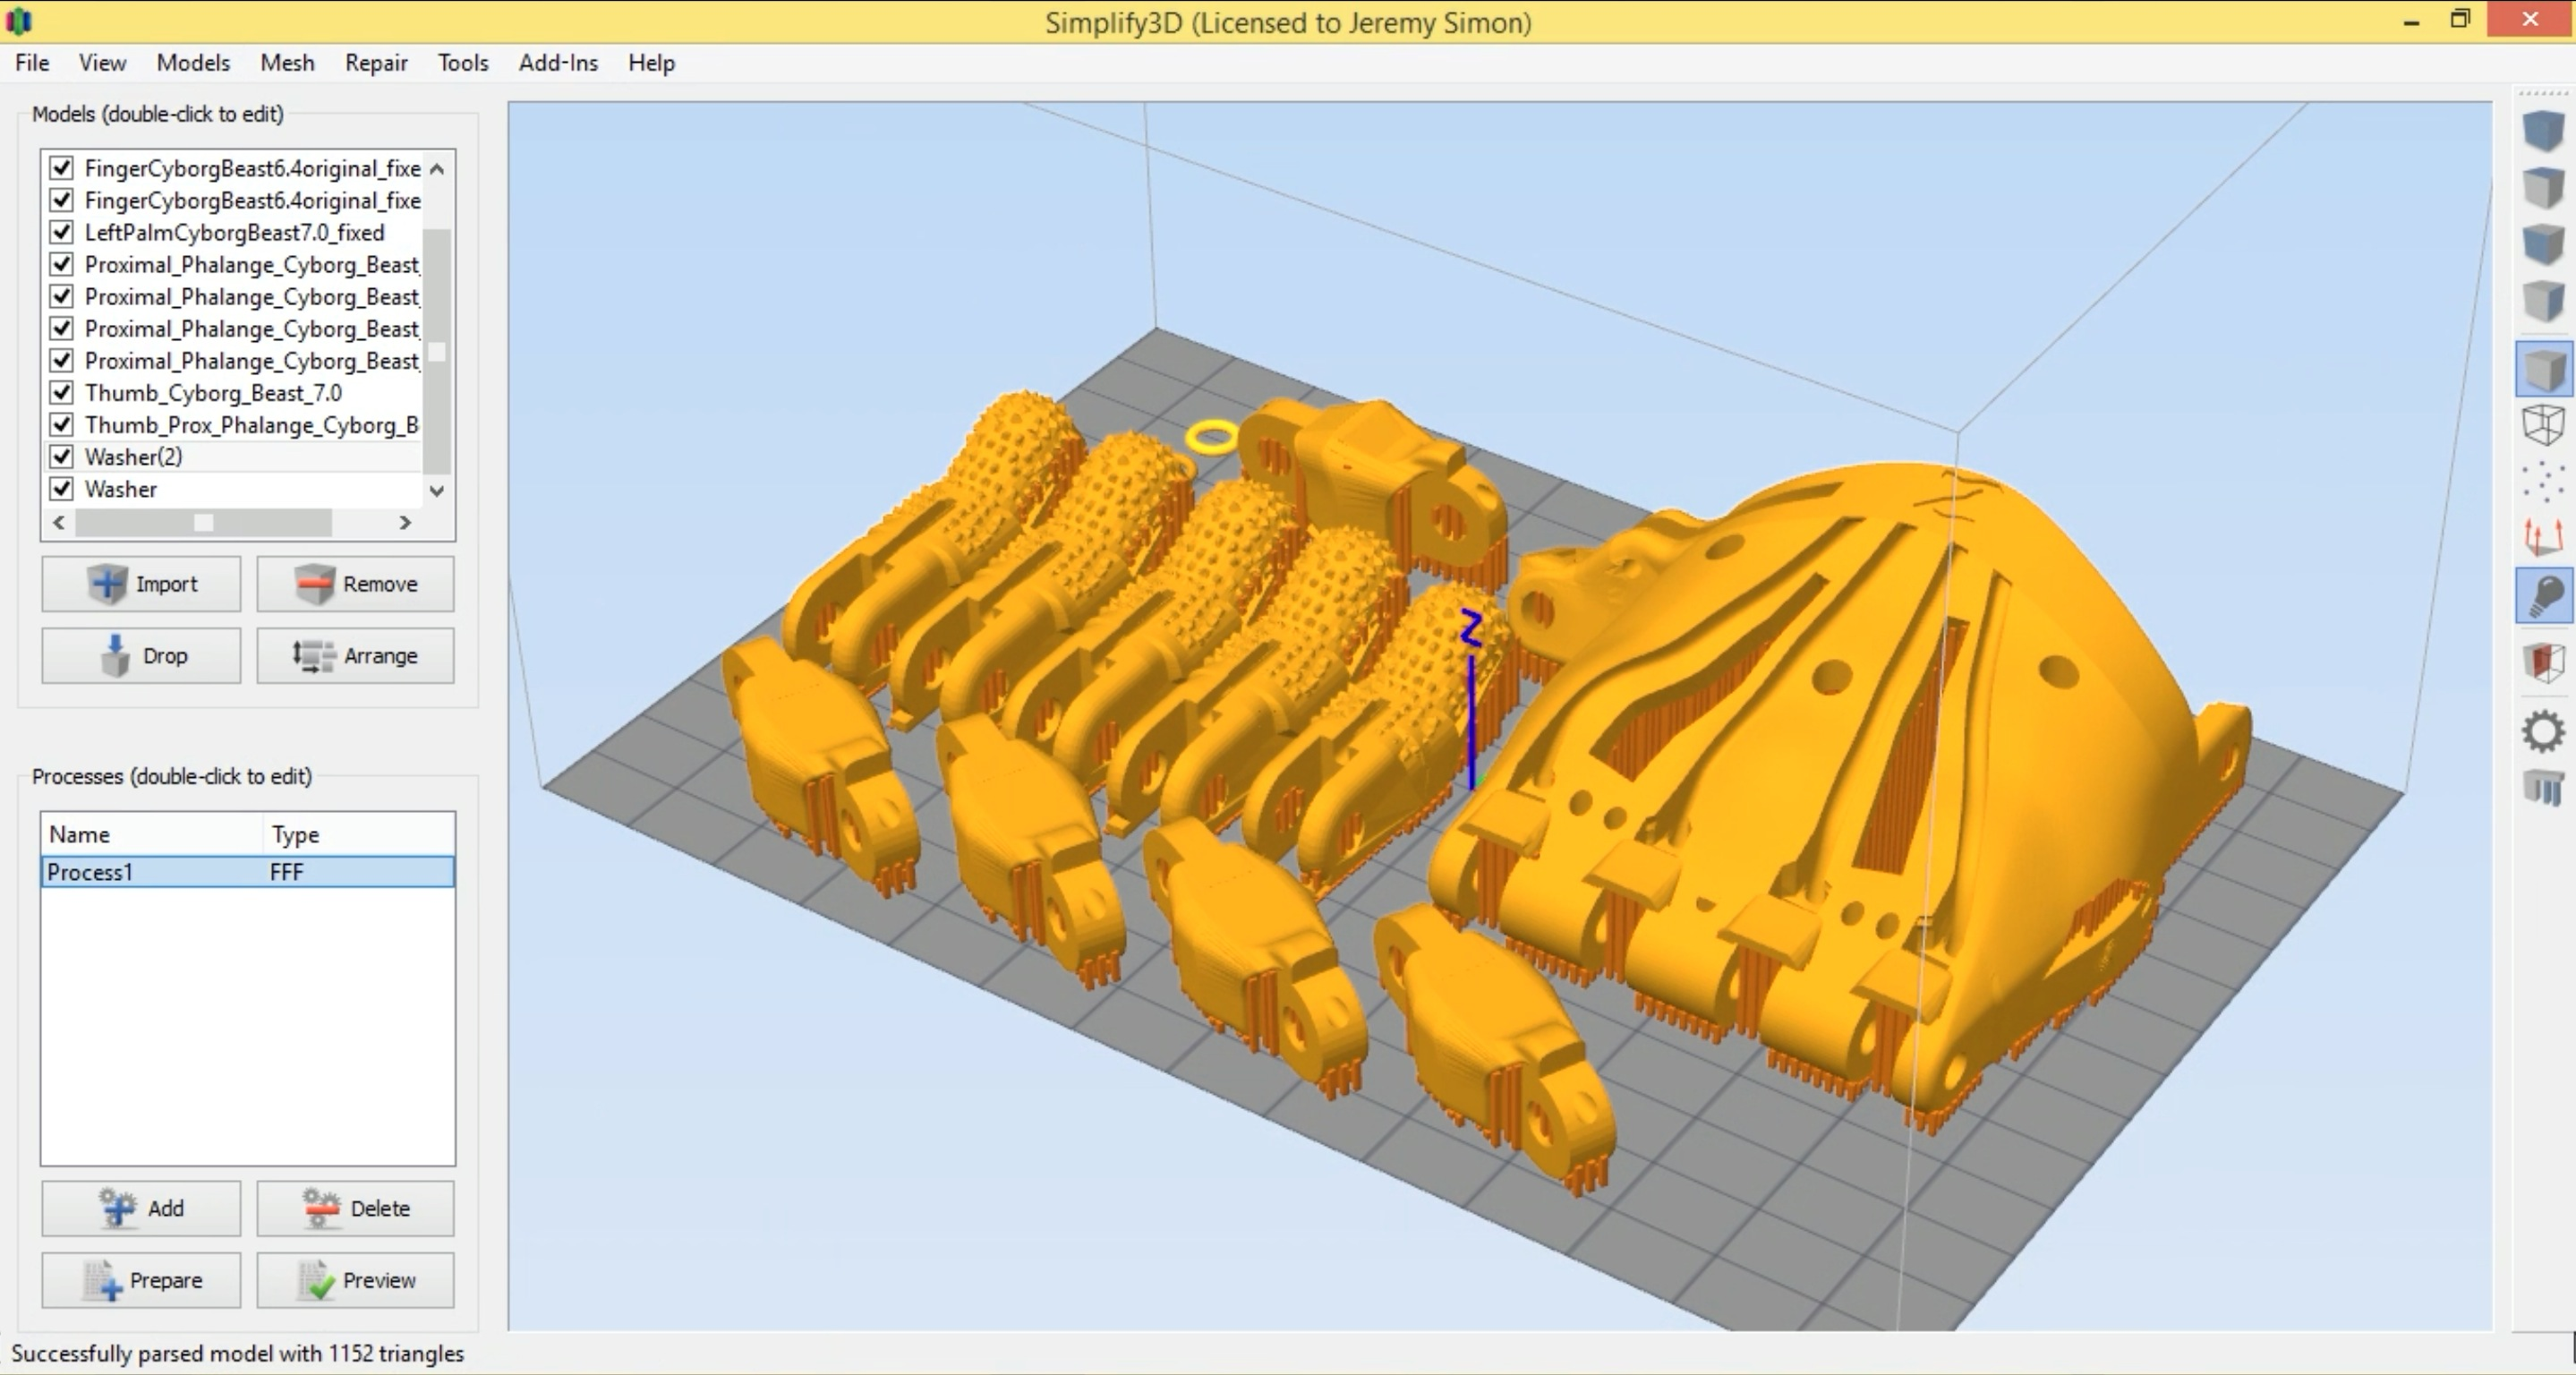 Simplify3D - E-nable hand on software build plate